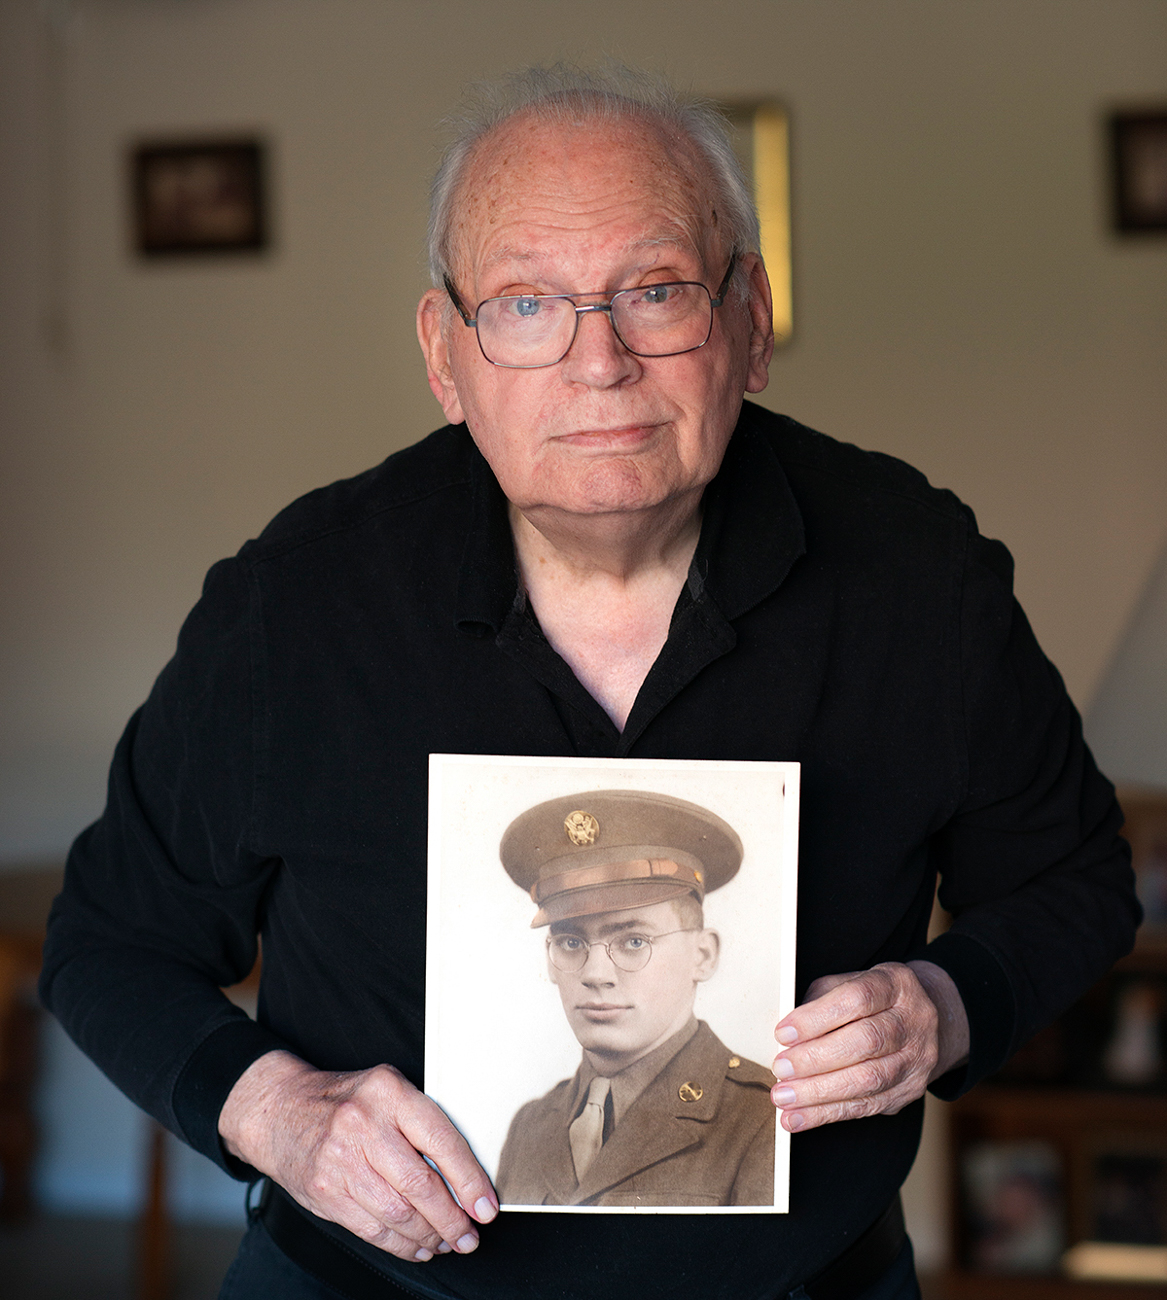 RICHARD SMITH / He registered on his 18th birthday and was drafted in 1943, going on to be an infantry rifleman who thankfully avoided conflict during the war. / Read more of his story at facebook.com/theygaveitall. / Image: Patrick McCue // Published: 1.29.17